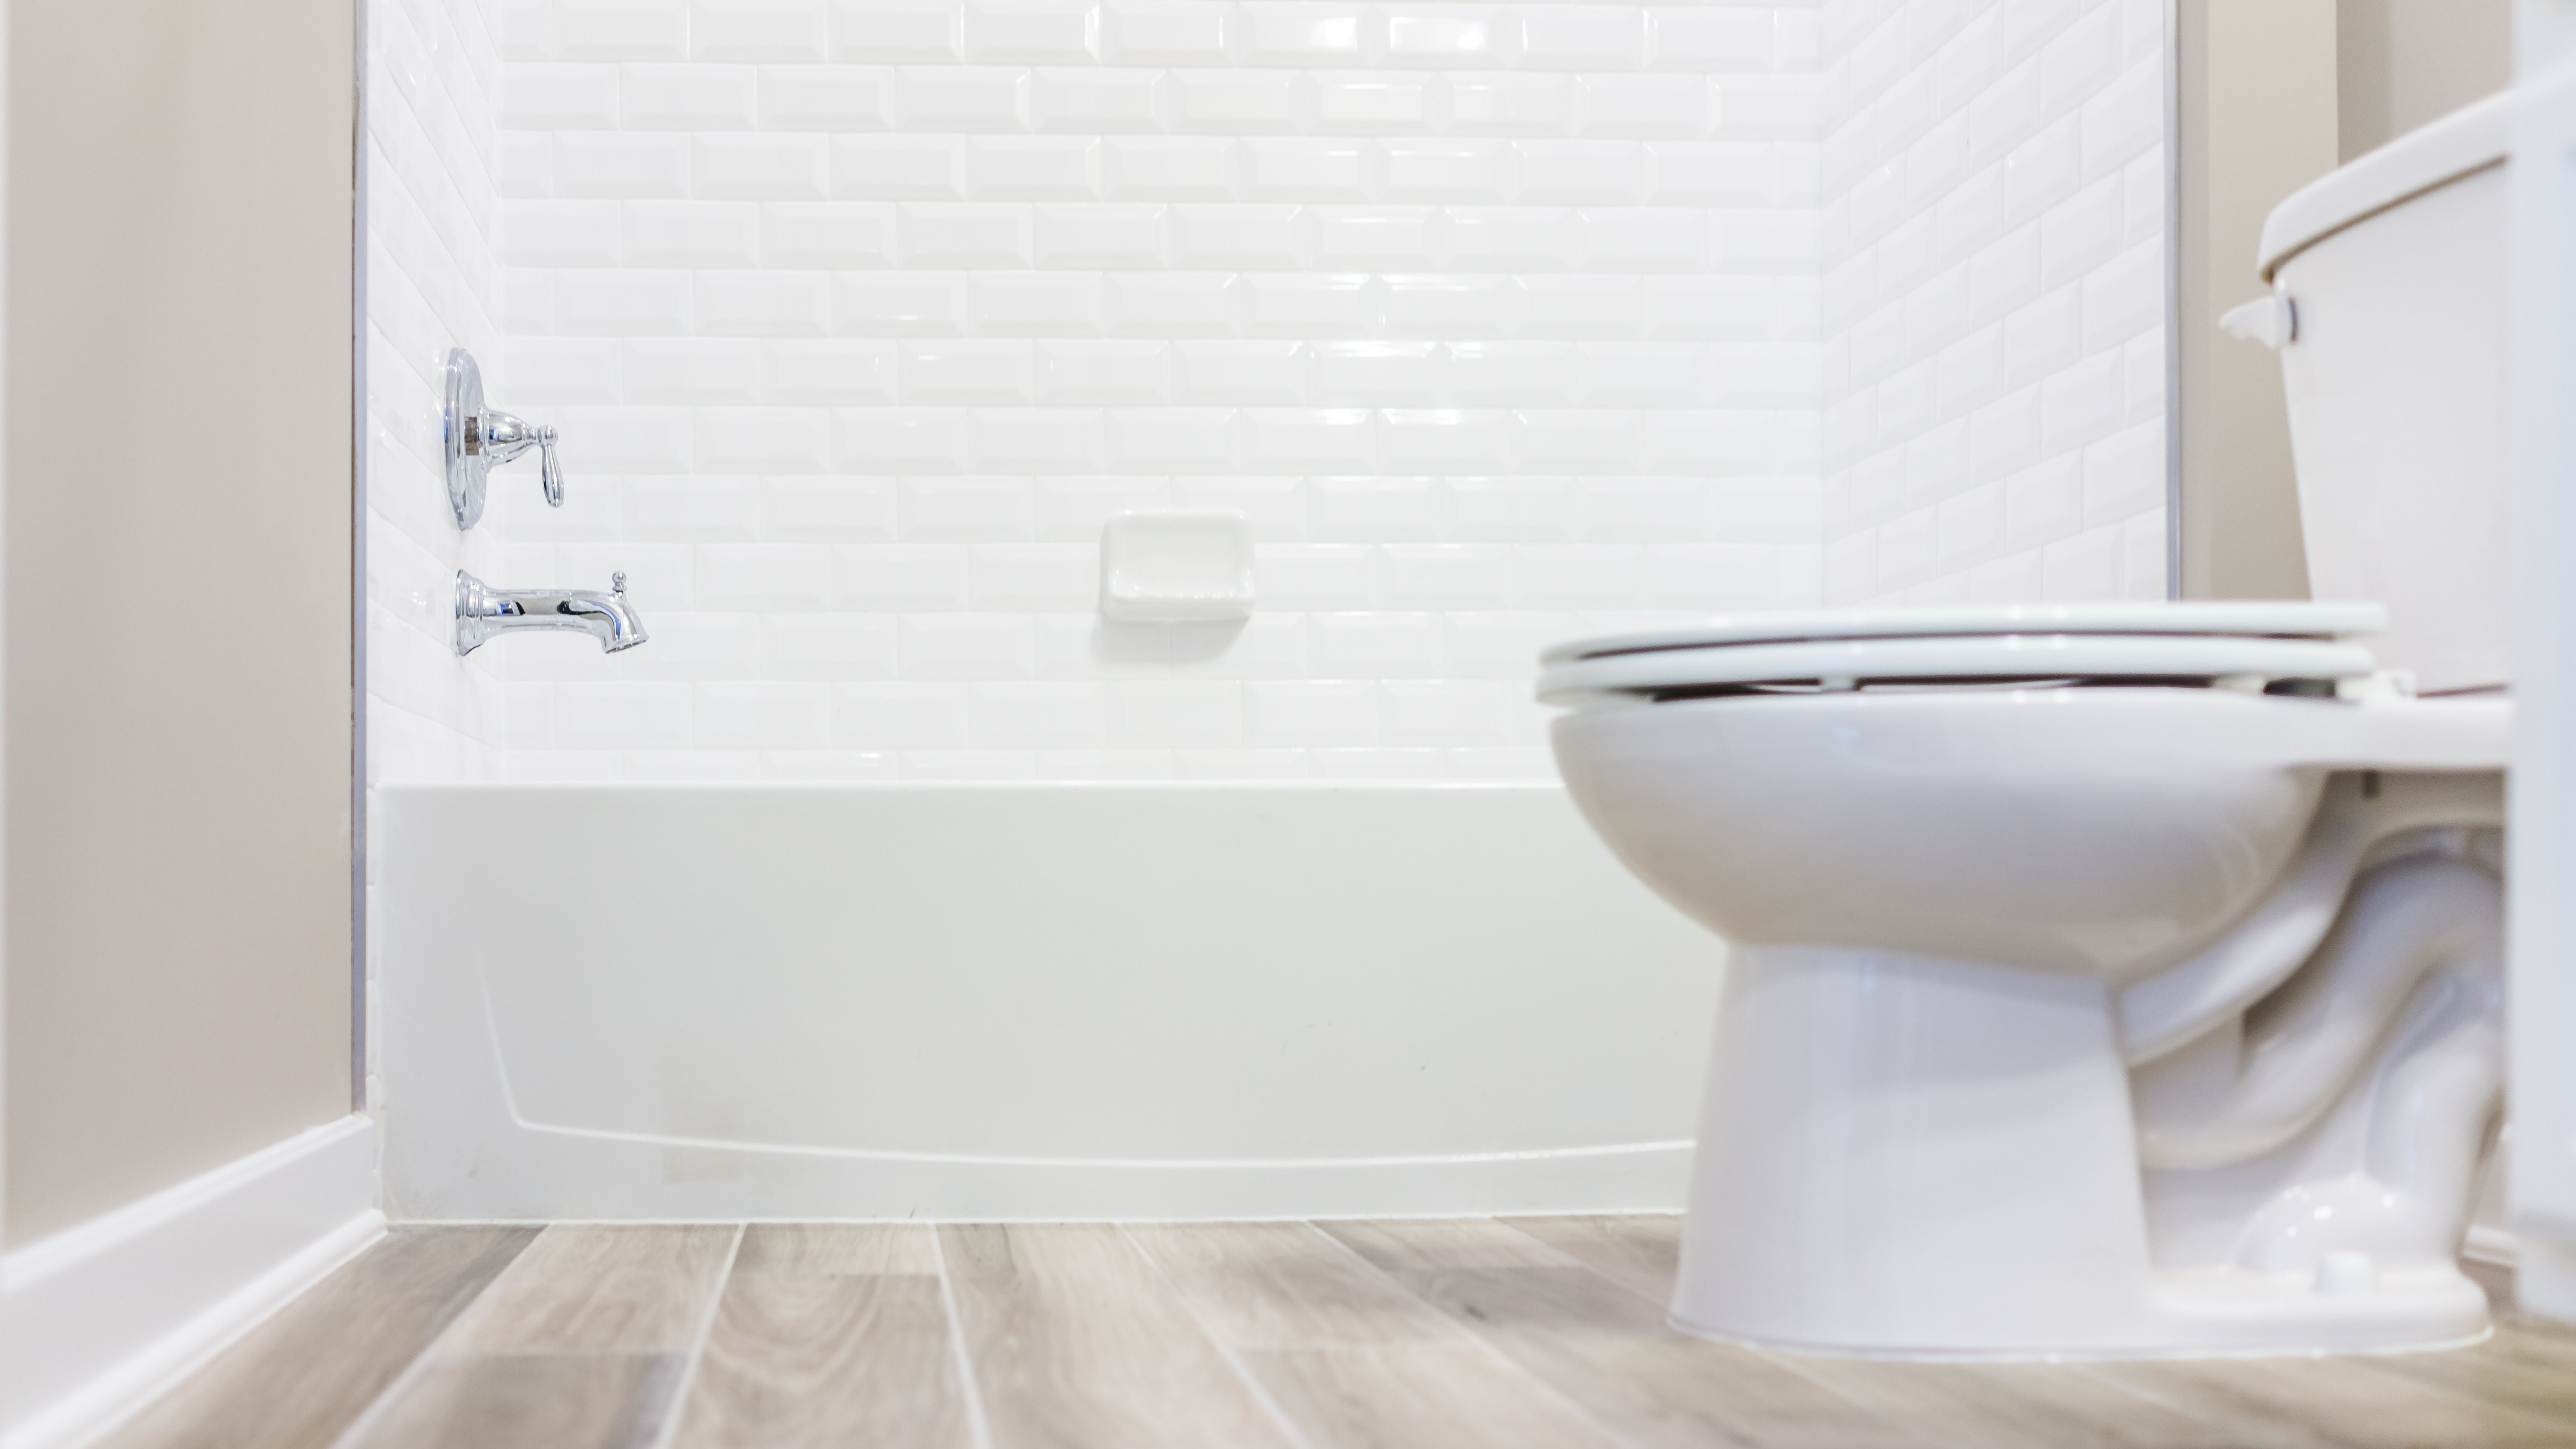 Use A Squeeze Bottle As A DIY Bidet